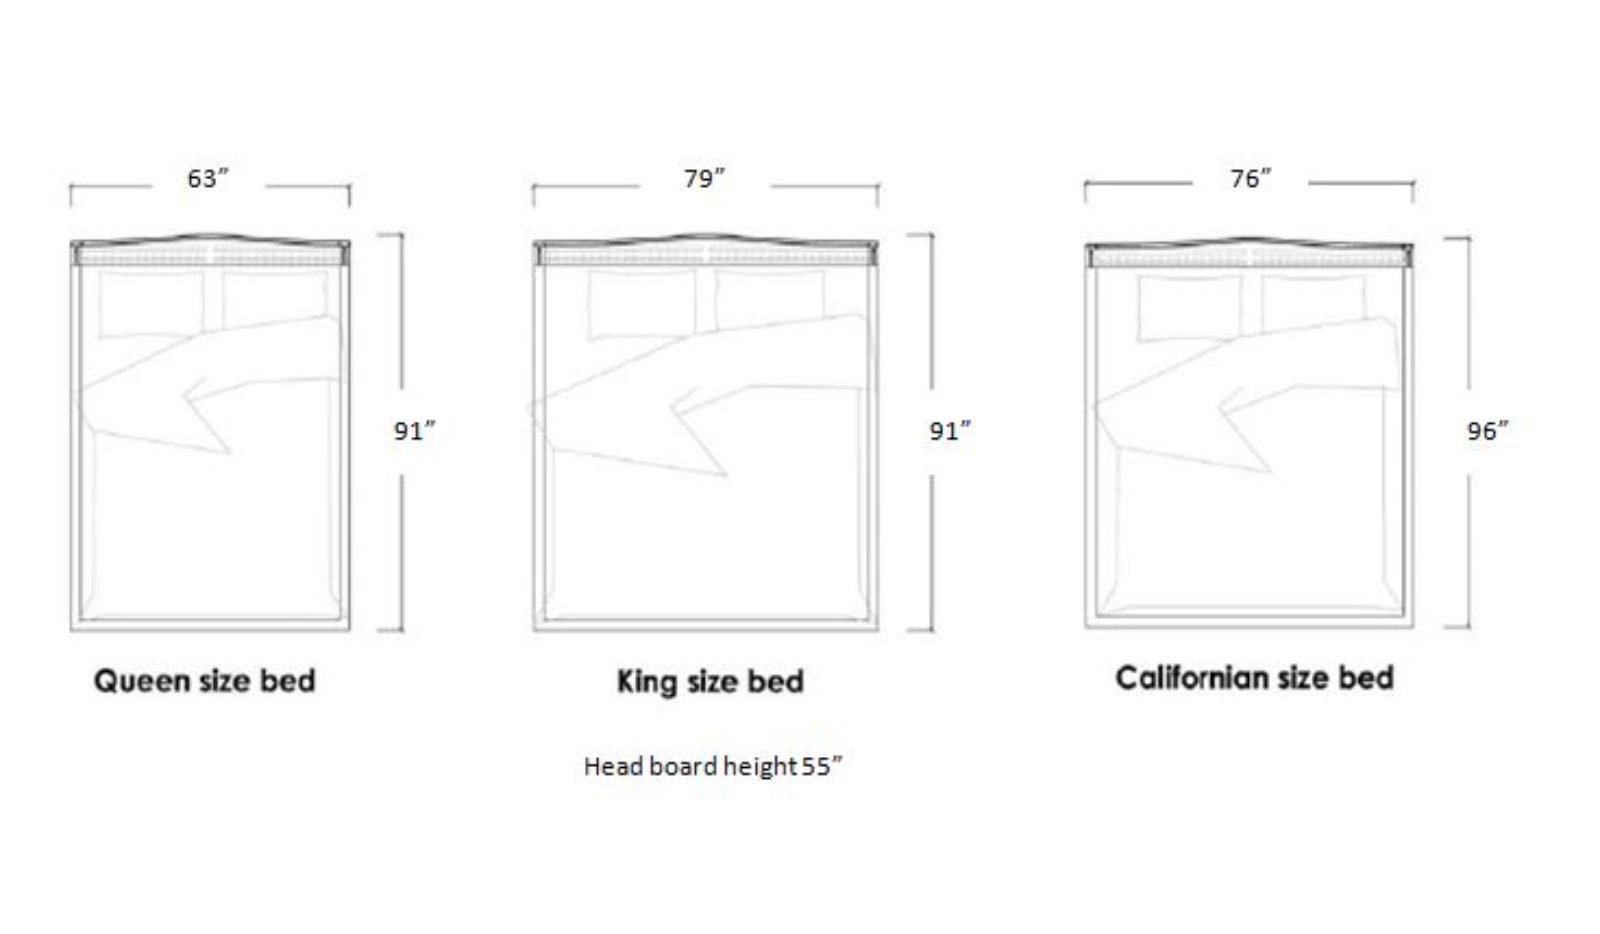 Acerno Zoli Contemporary Living Bed Sizes Diagram Dimensions